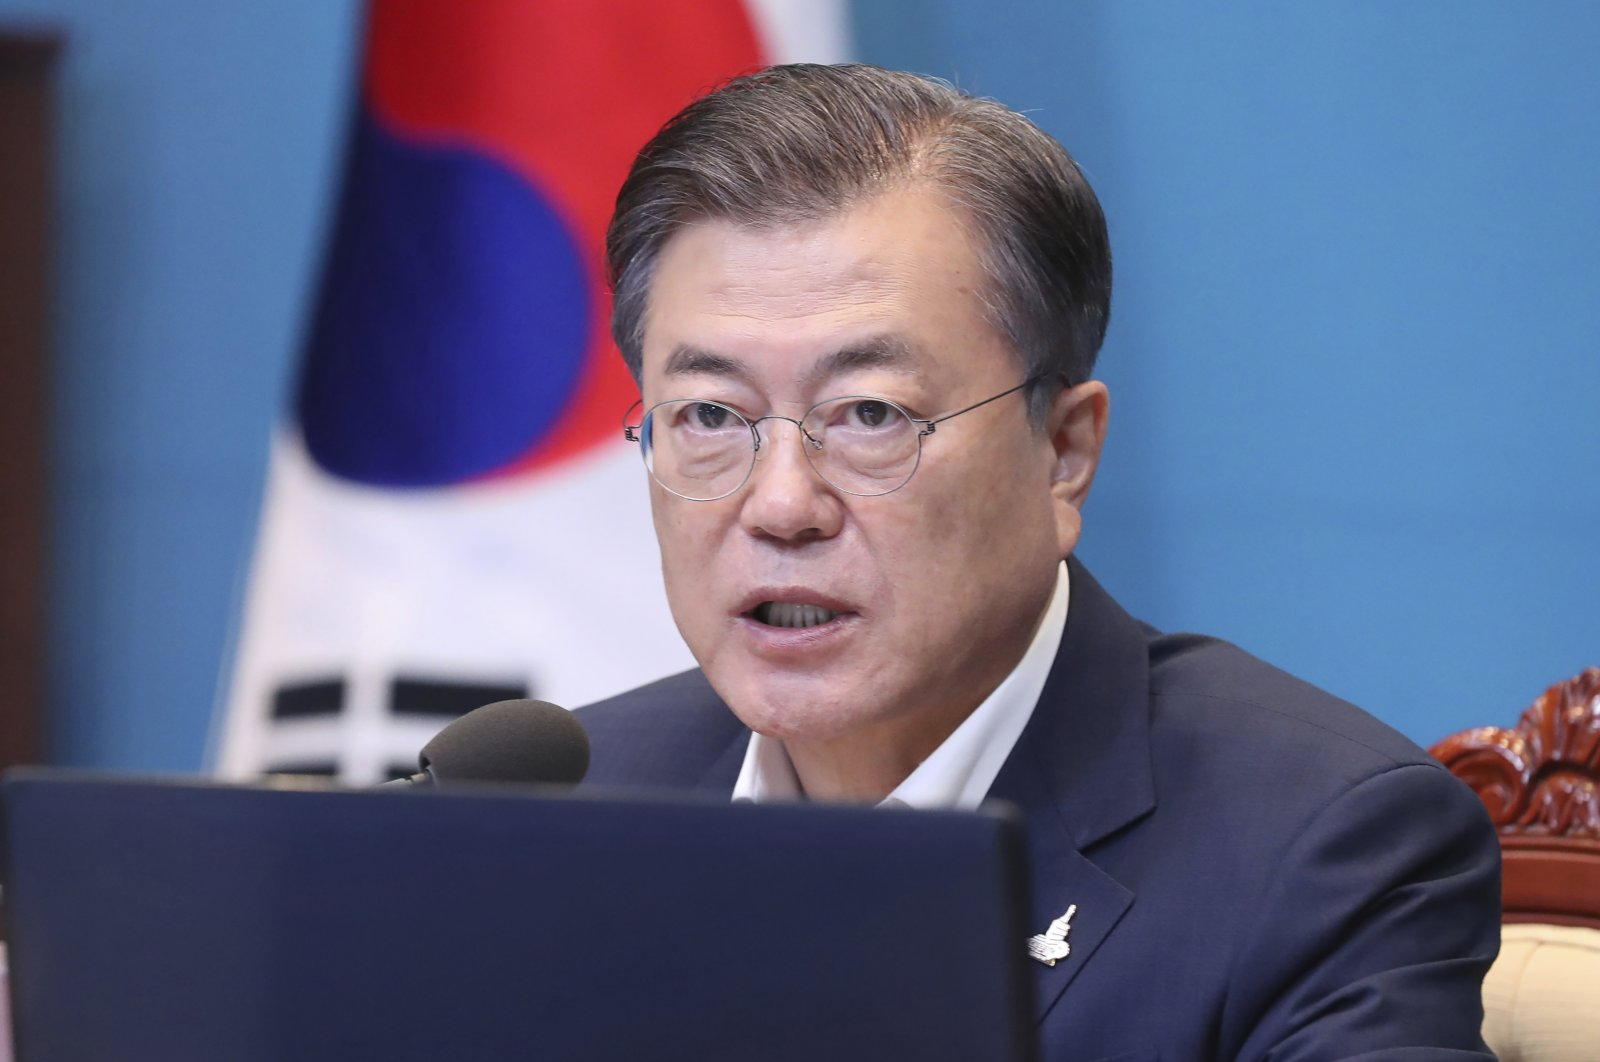 South Korean President Moon Jae-in speaks during a meeting with his senior secretaries at the presidential Blue House, Seoul, Sept. 28, 2020. (AP Photo)